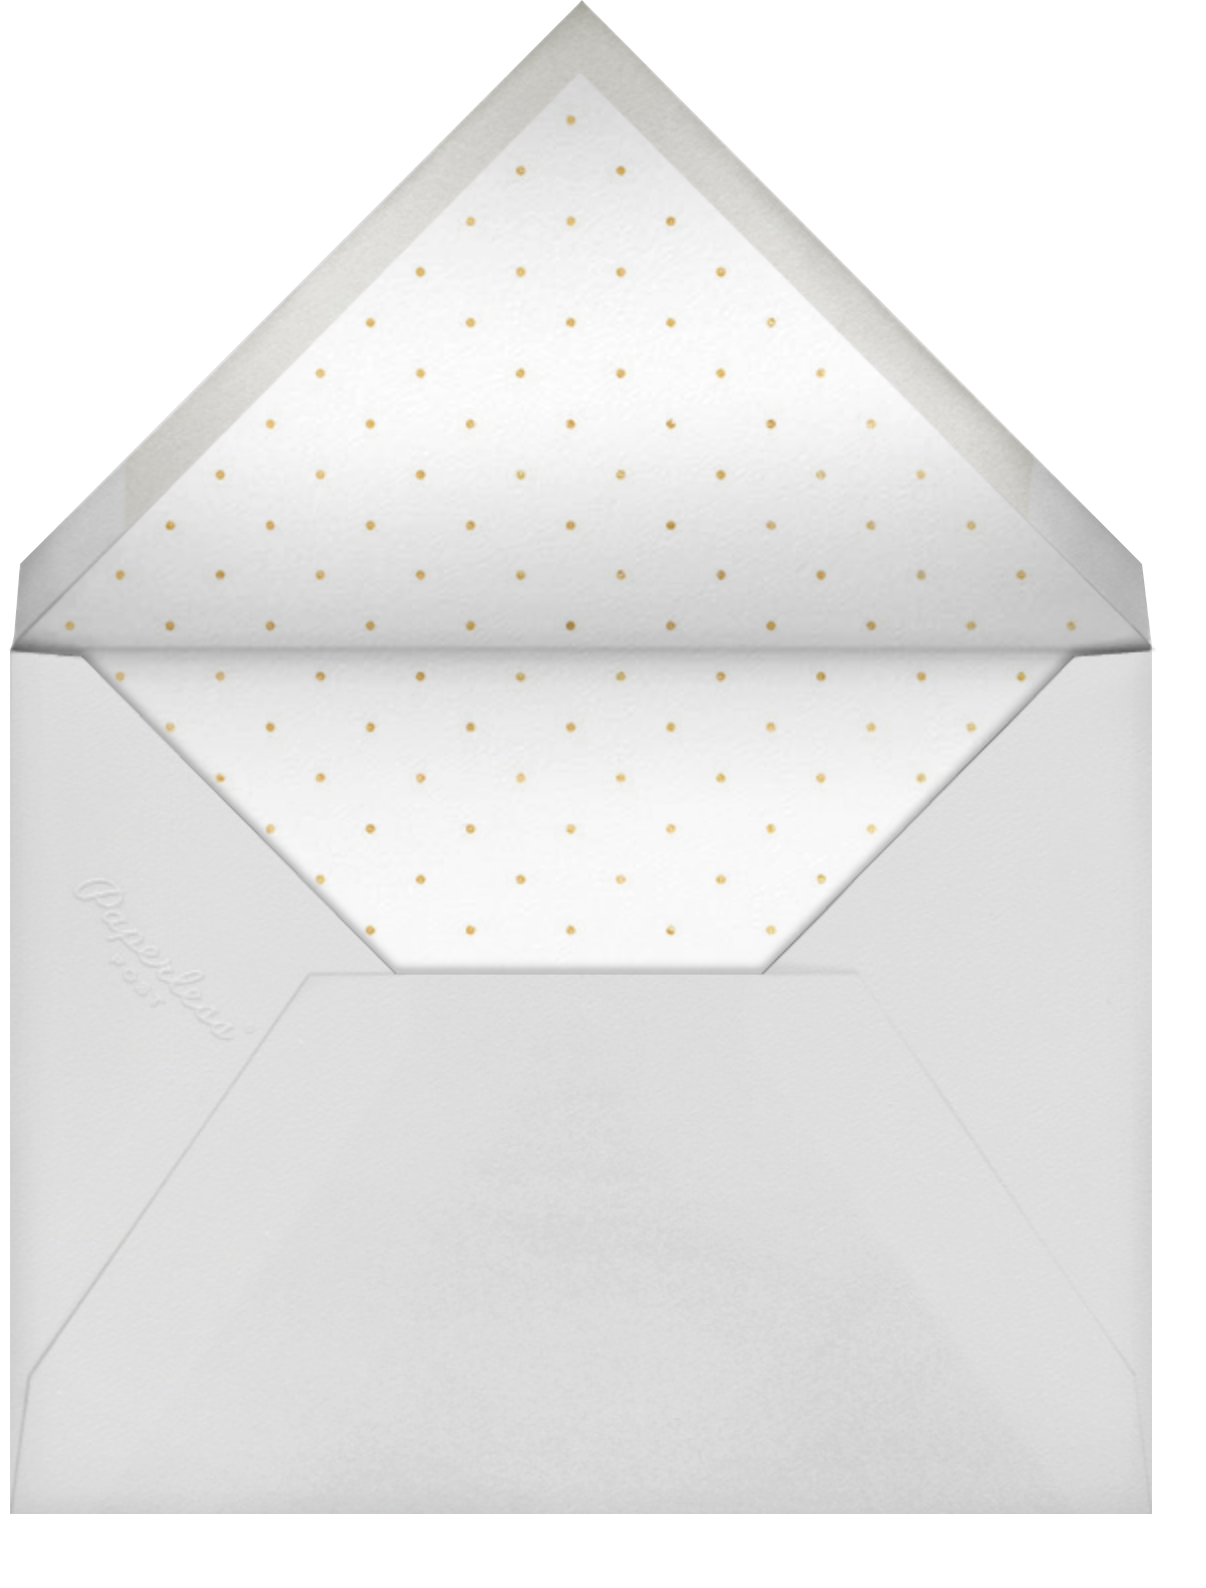 Cream (Square) - Paperless Post - Wedding party requests - envelope back